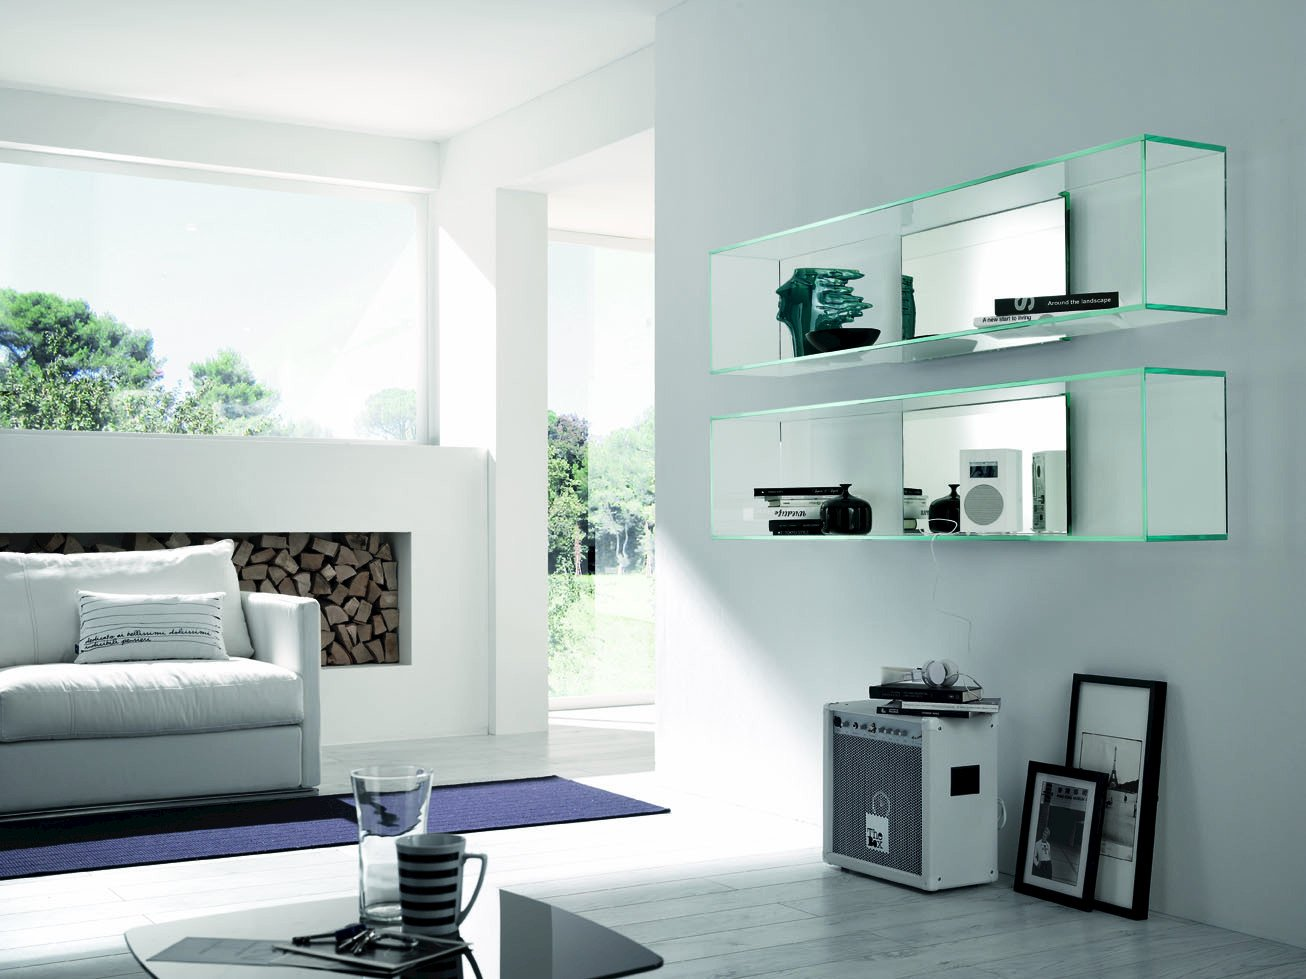 tag re murale en verre brama by t d tonelli design. Black Bedroom Furniture Sets. Home Design Ideas